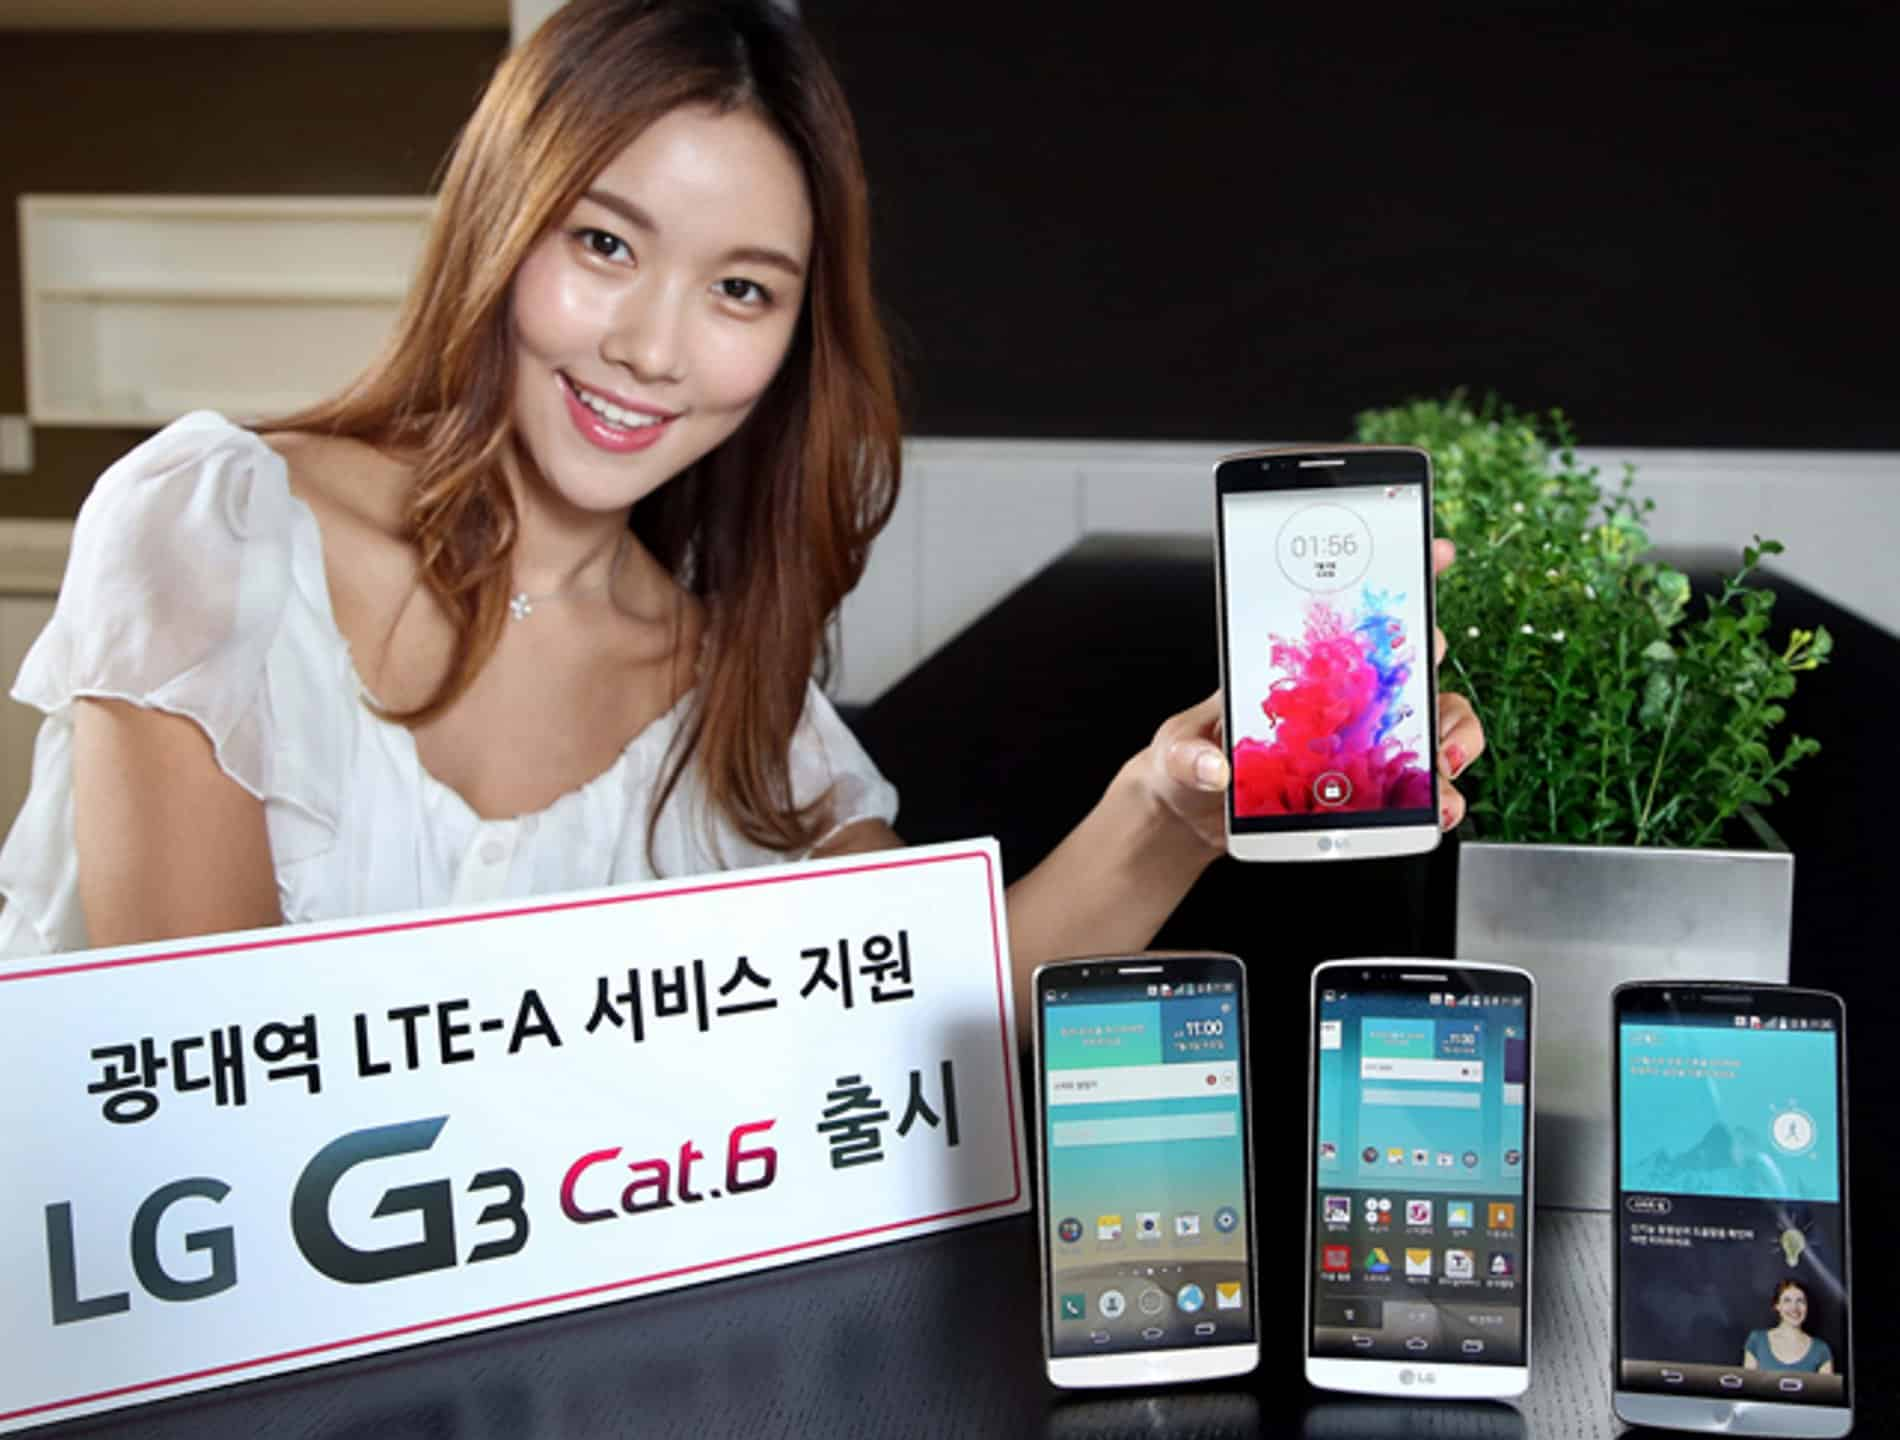 LG G3 Cat.6 Officially Announced with LTE-Advanced and Snapdragon 805